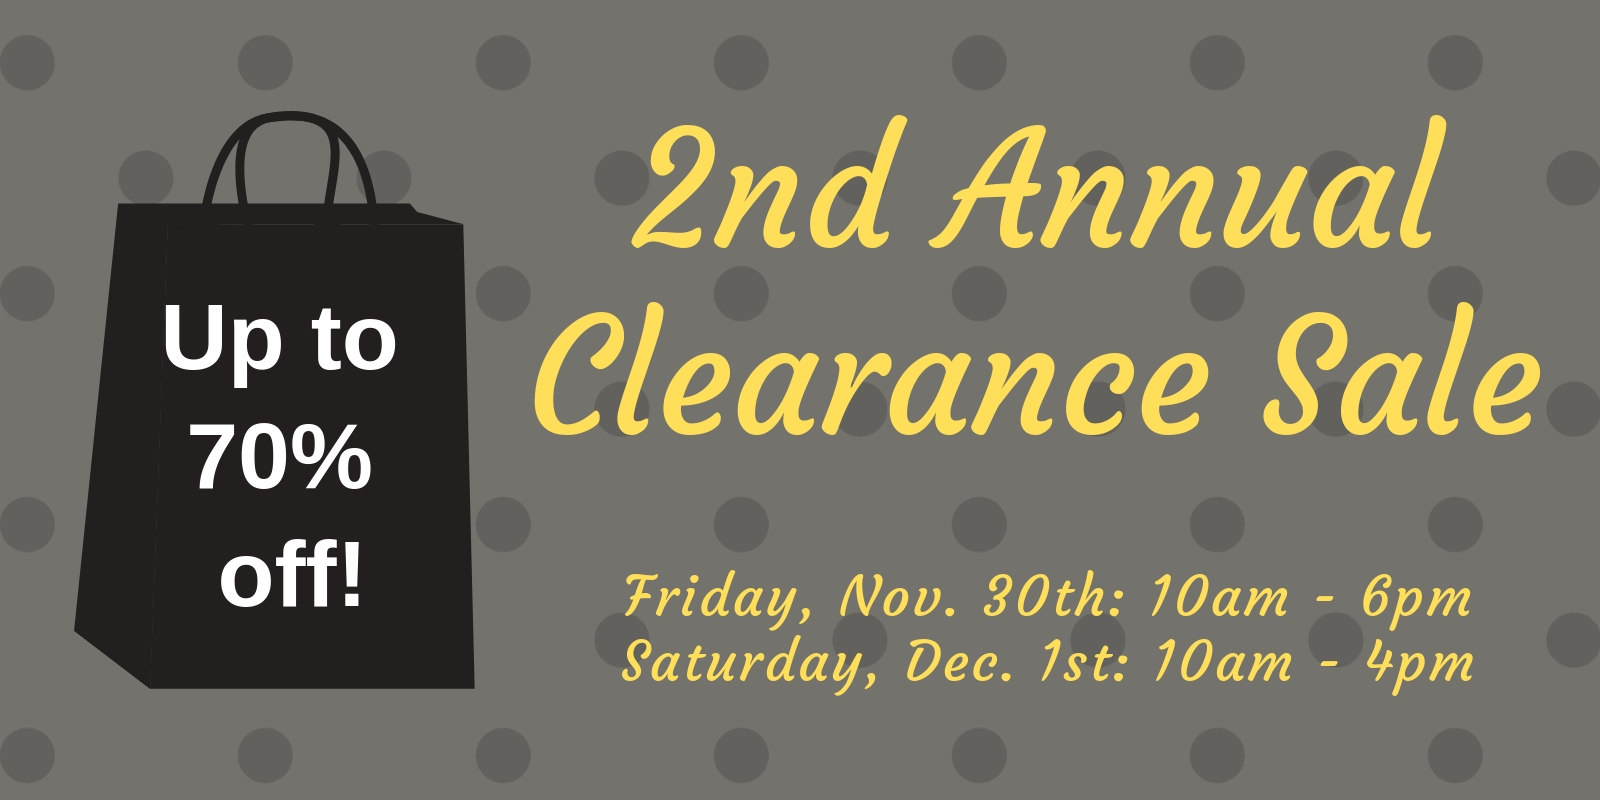 2nd Annual Clearance Sale